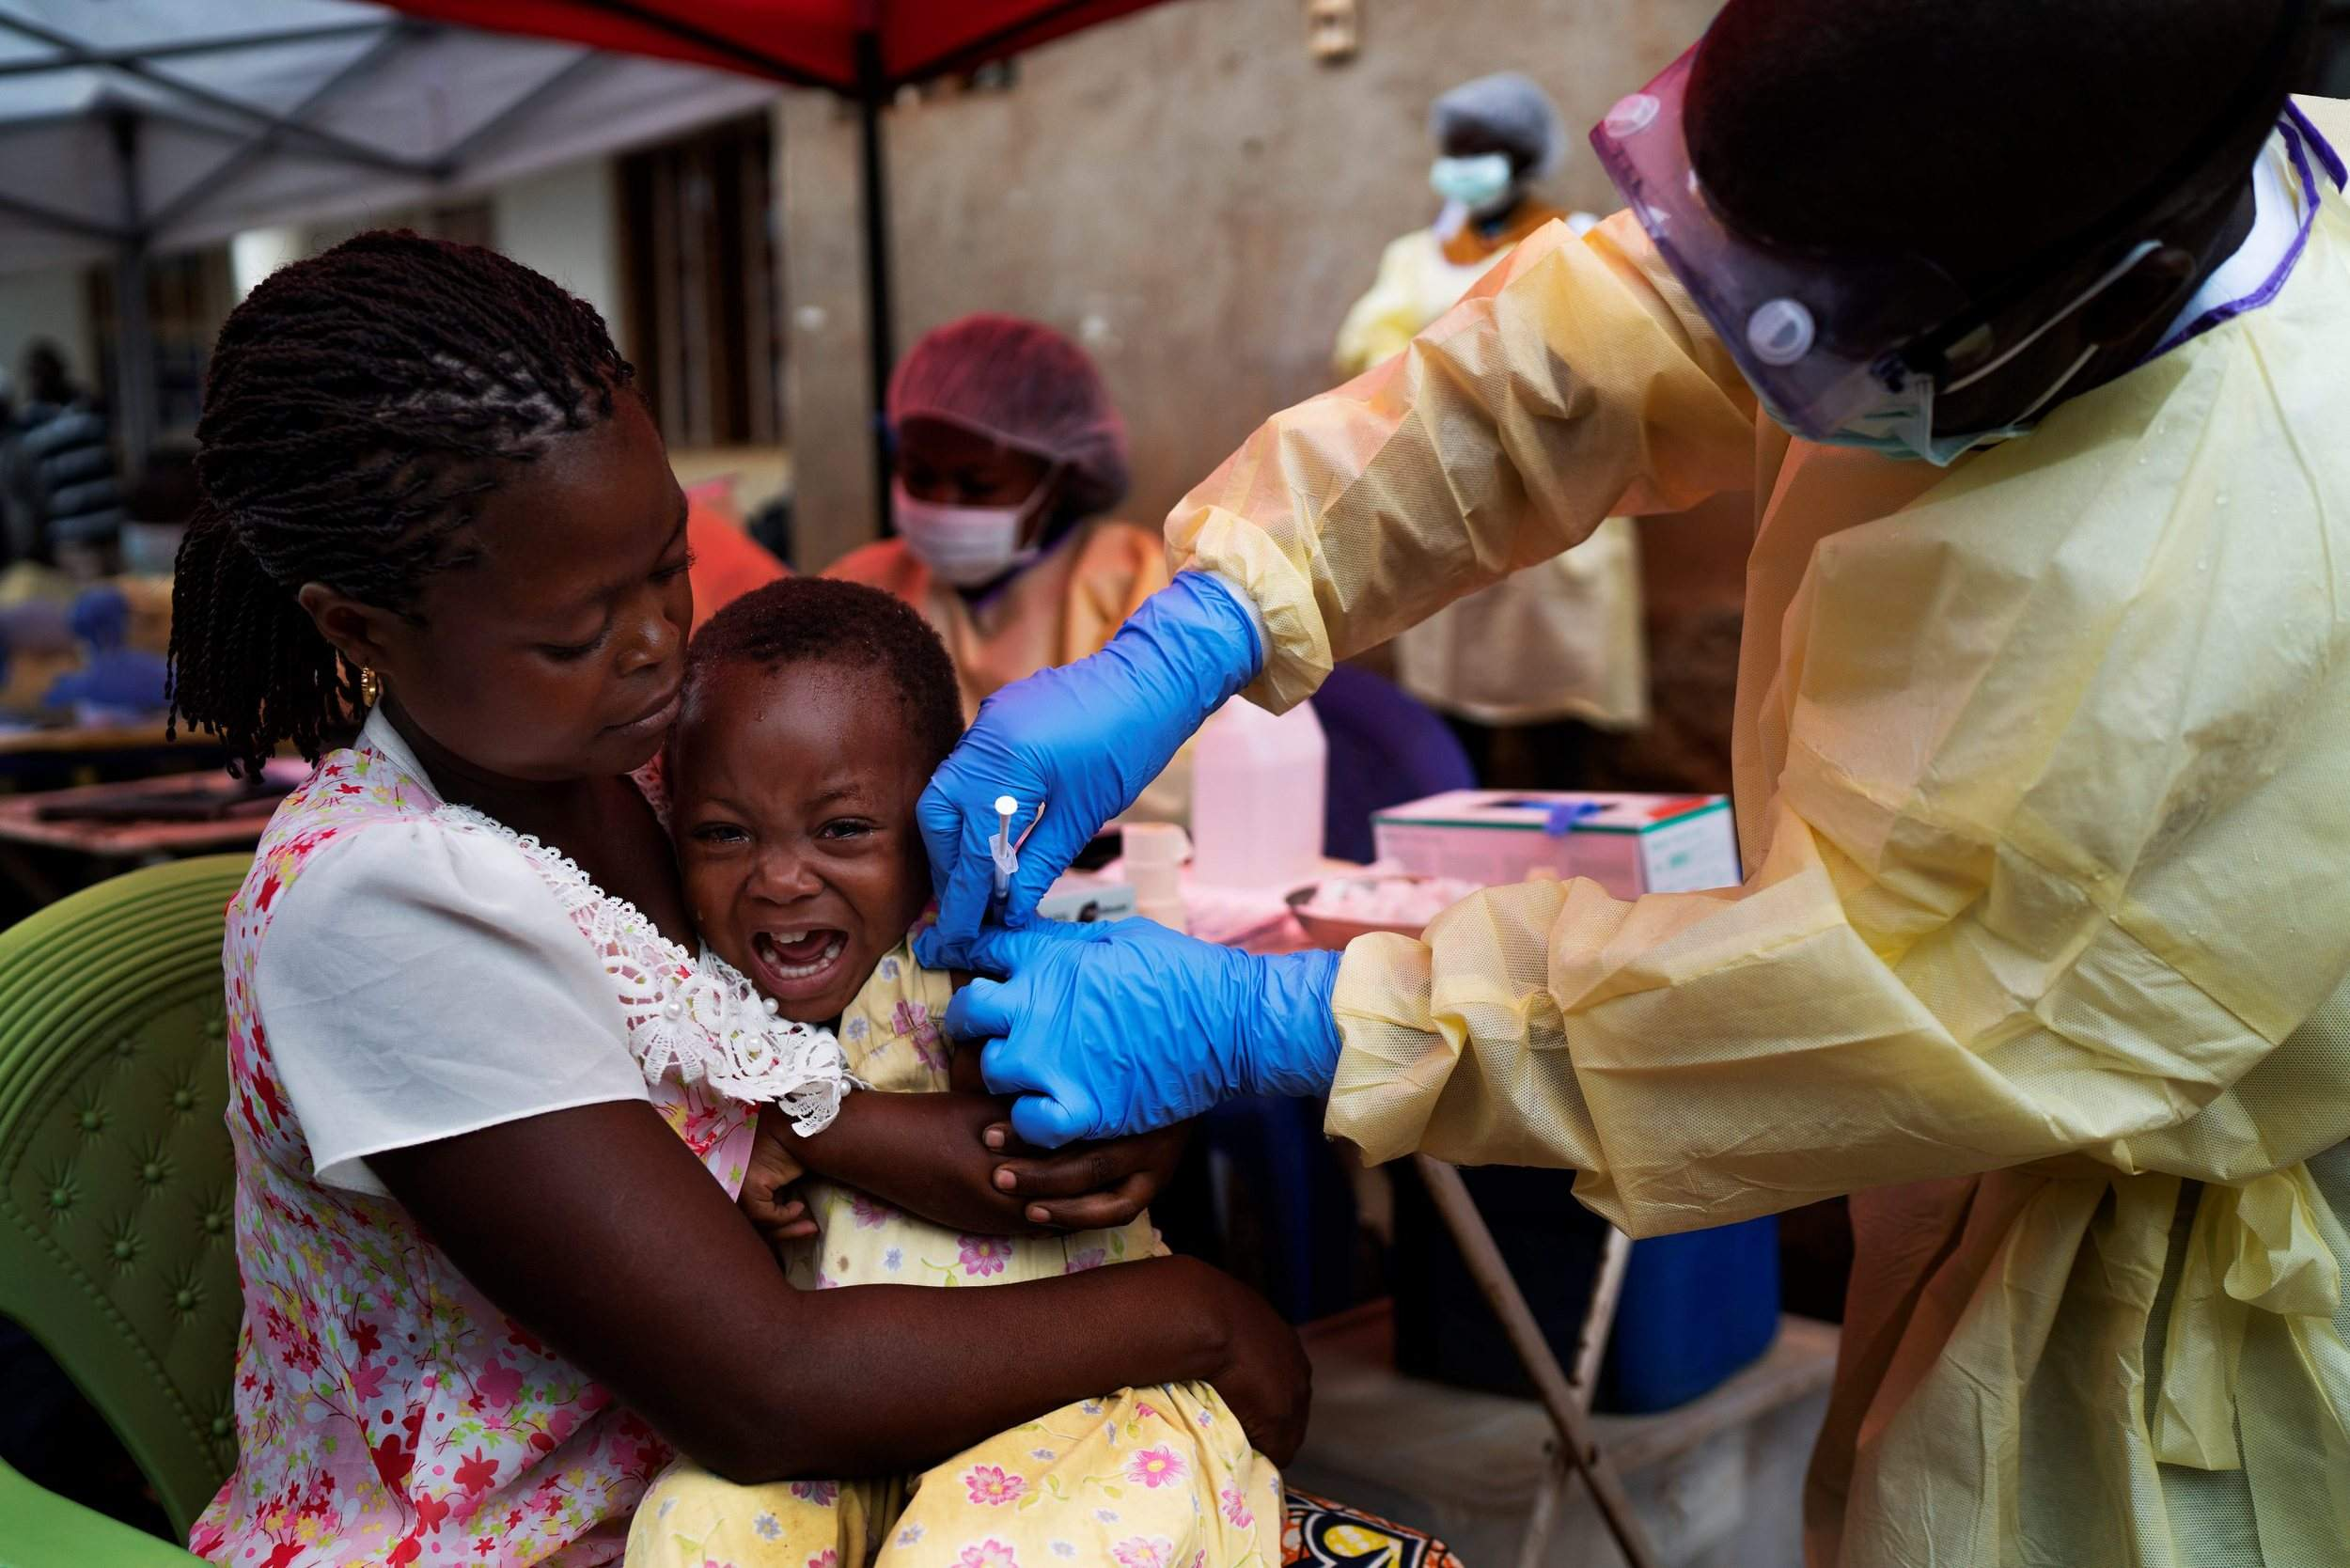 Tanzania summons World Health Organization representative over Ebola complaint